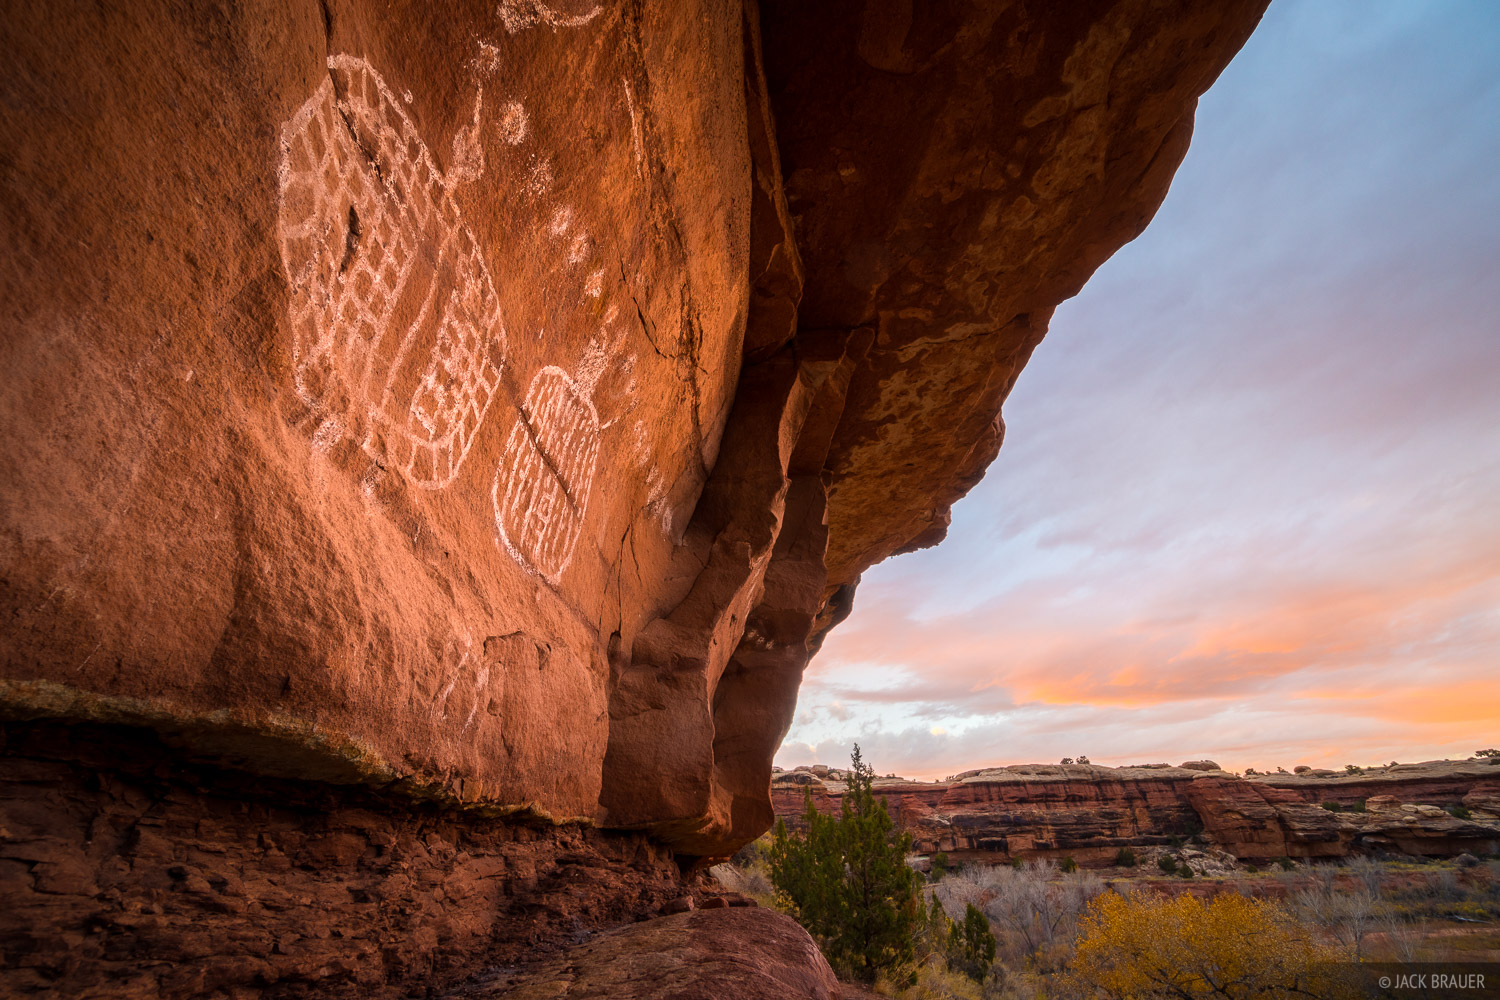 Canyonlands National Park, Peakaboo, Salt Creek, Utah, pictographs, November, photo